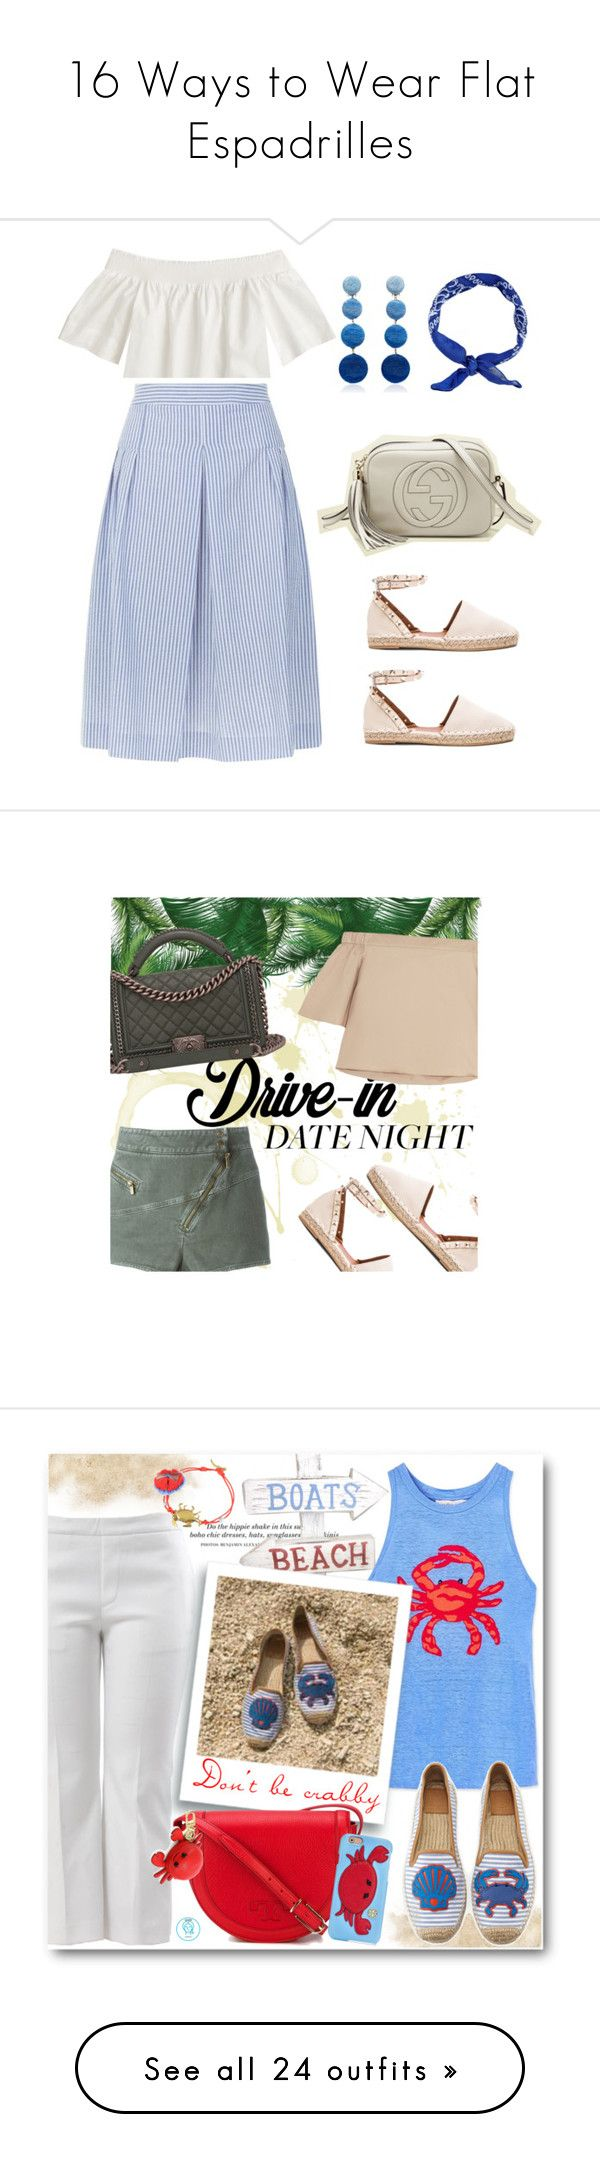 """""""16 Ways to Wear Flat Espadrilles"""" by polyvore-editorial ❤ liked on Polyvore featuring waystowear, flatespadrilles, J.Crew, Claudie Pierlot, Valentino, Gucci, New Look, Rebecca de Ravenel, TIBI and Roberto Cavalli"""